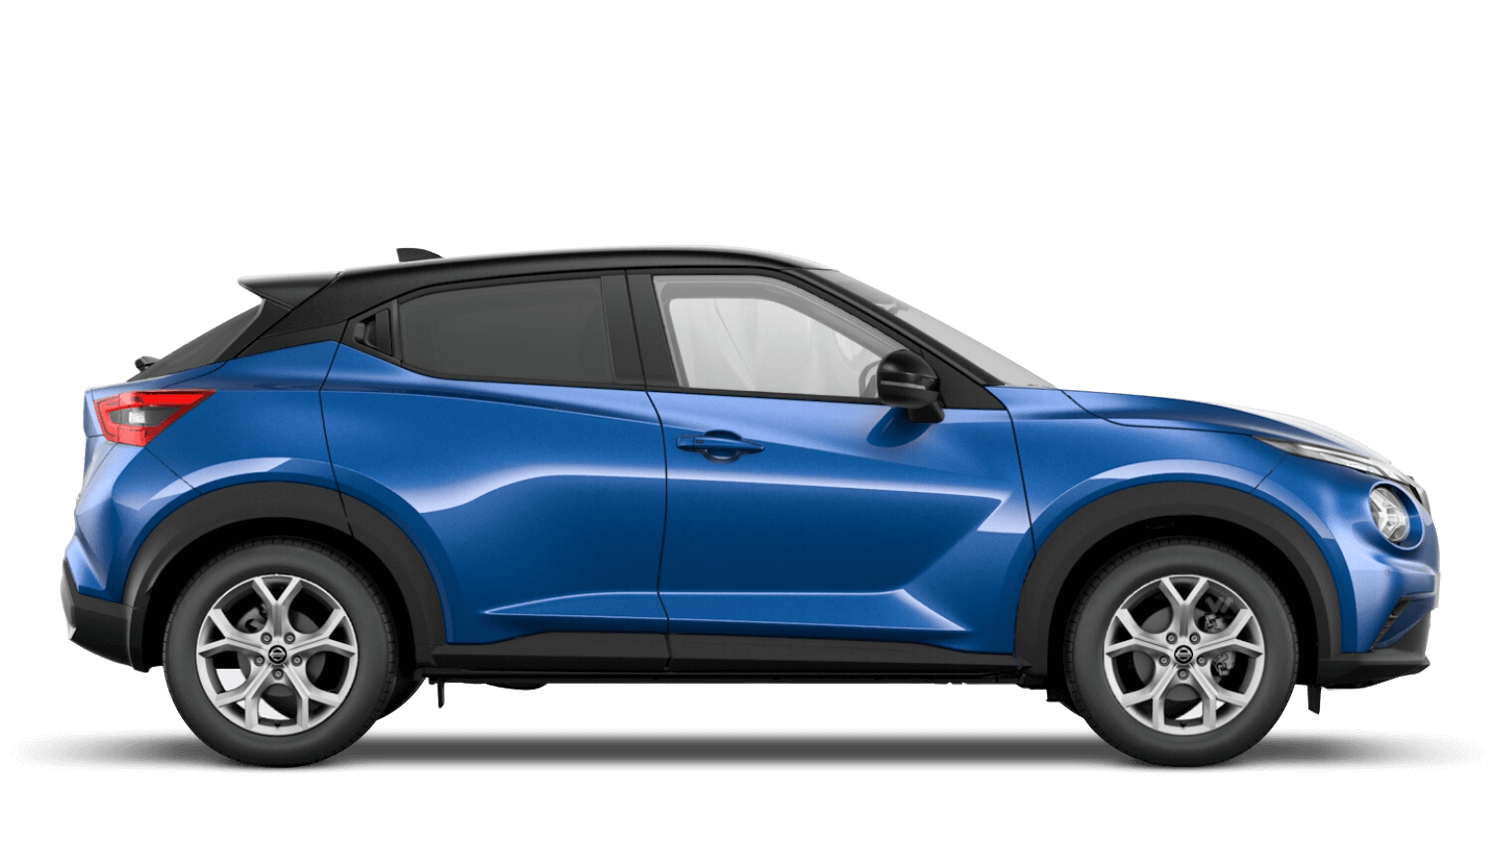 Vivid Blue with Pearl Black Roof Next Generation Nissan Juke